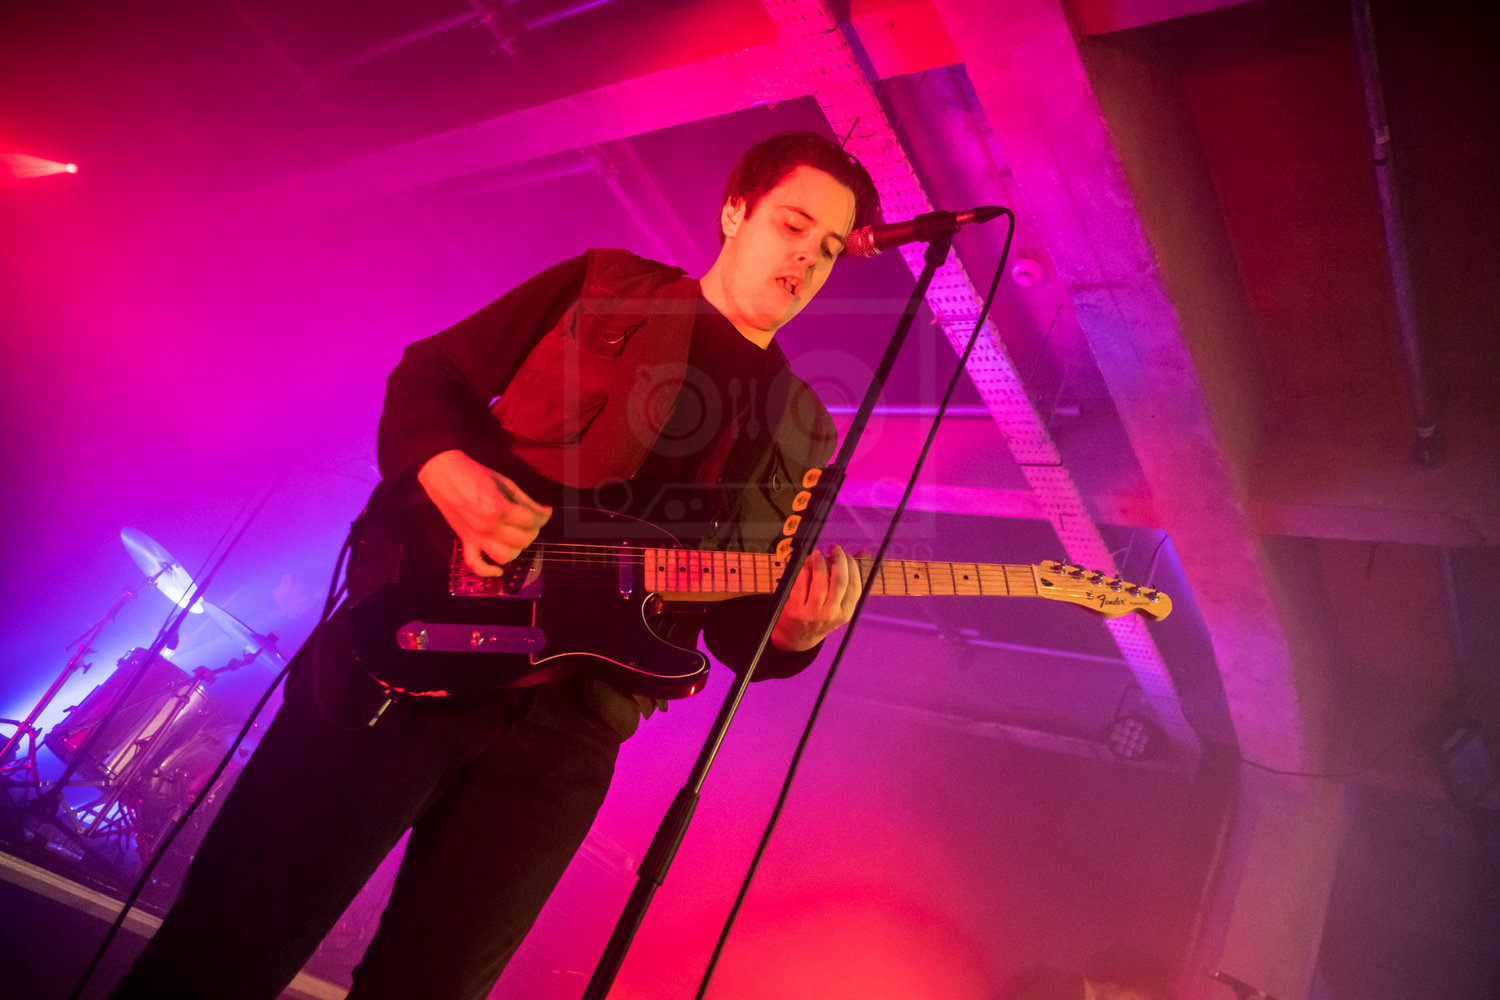 BABY STRANGE PERFORMING AT GLASGOW'S SWG3: TV STUDIO - 22.12.2018 PICTURE BY: STEPHEN WILSON PHOTOGRAPHY